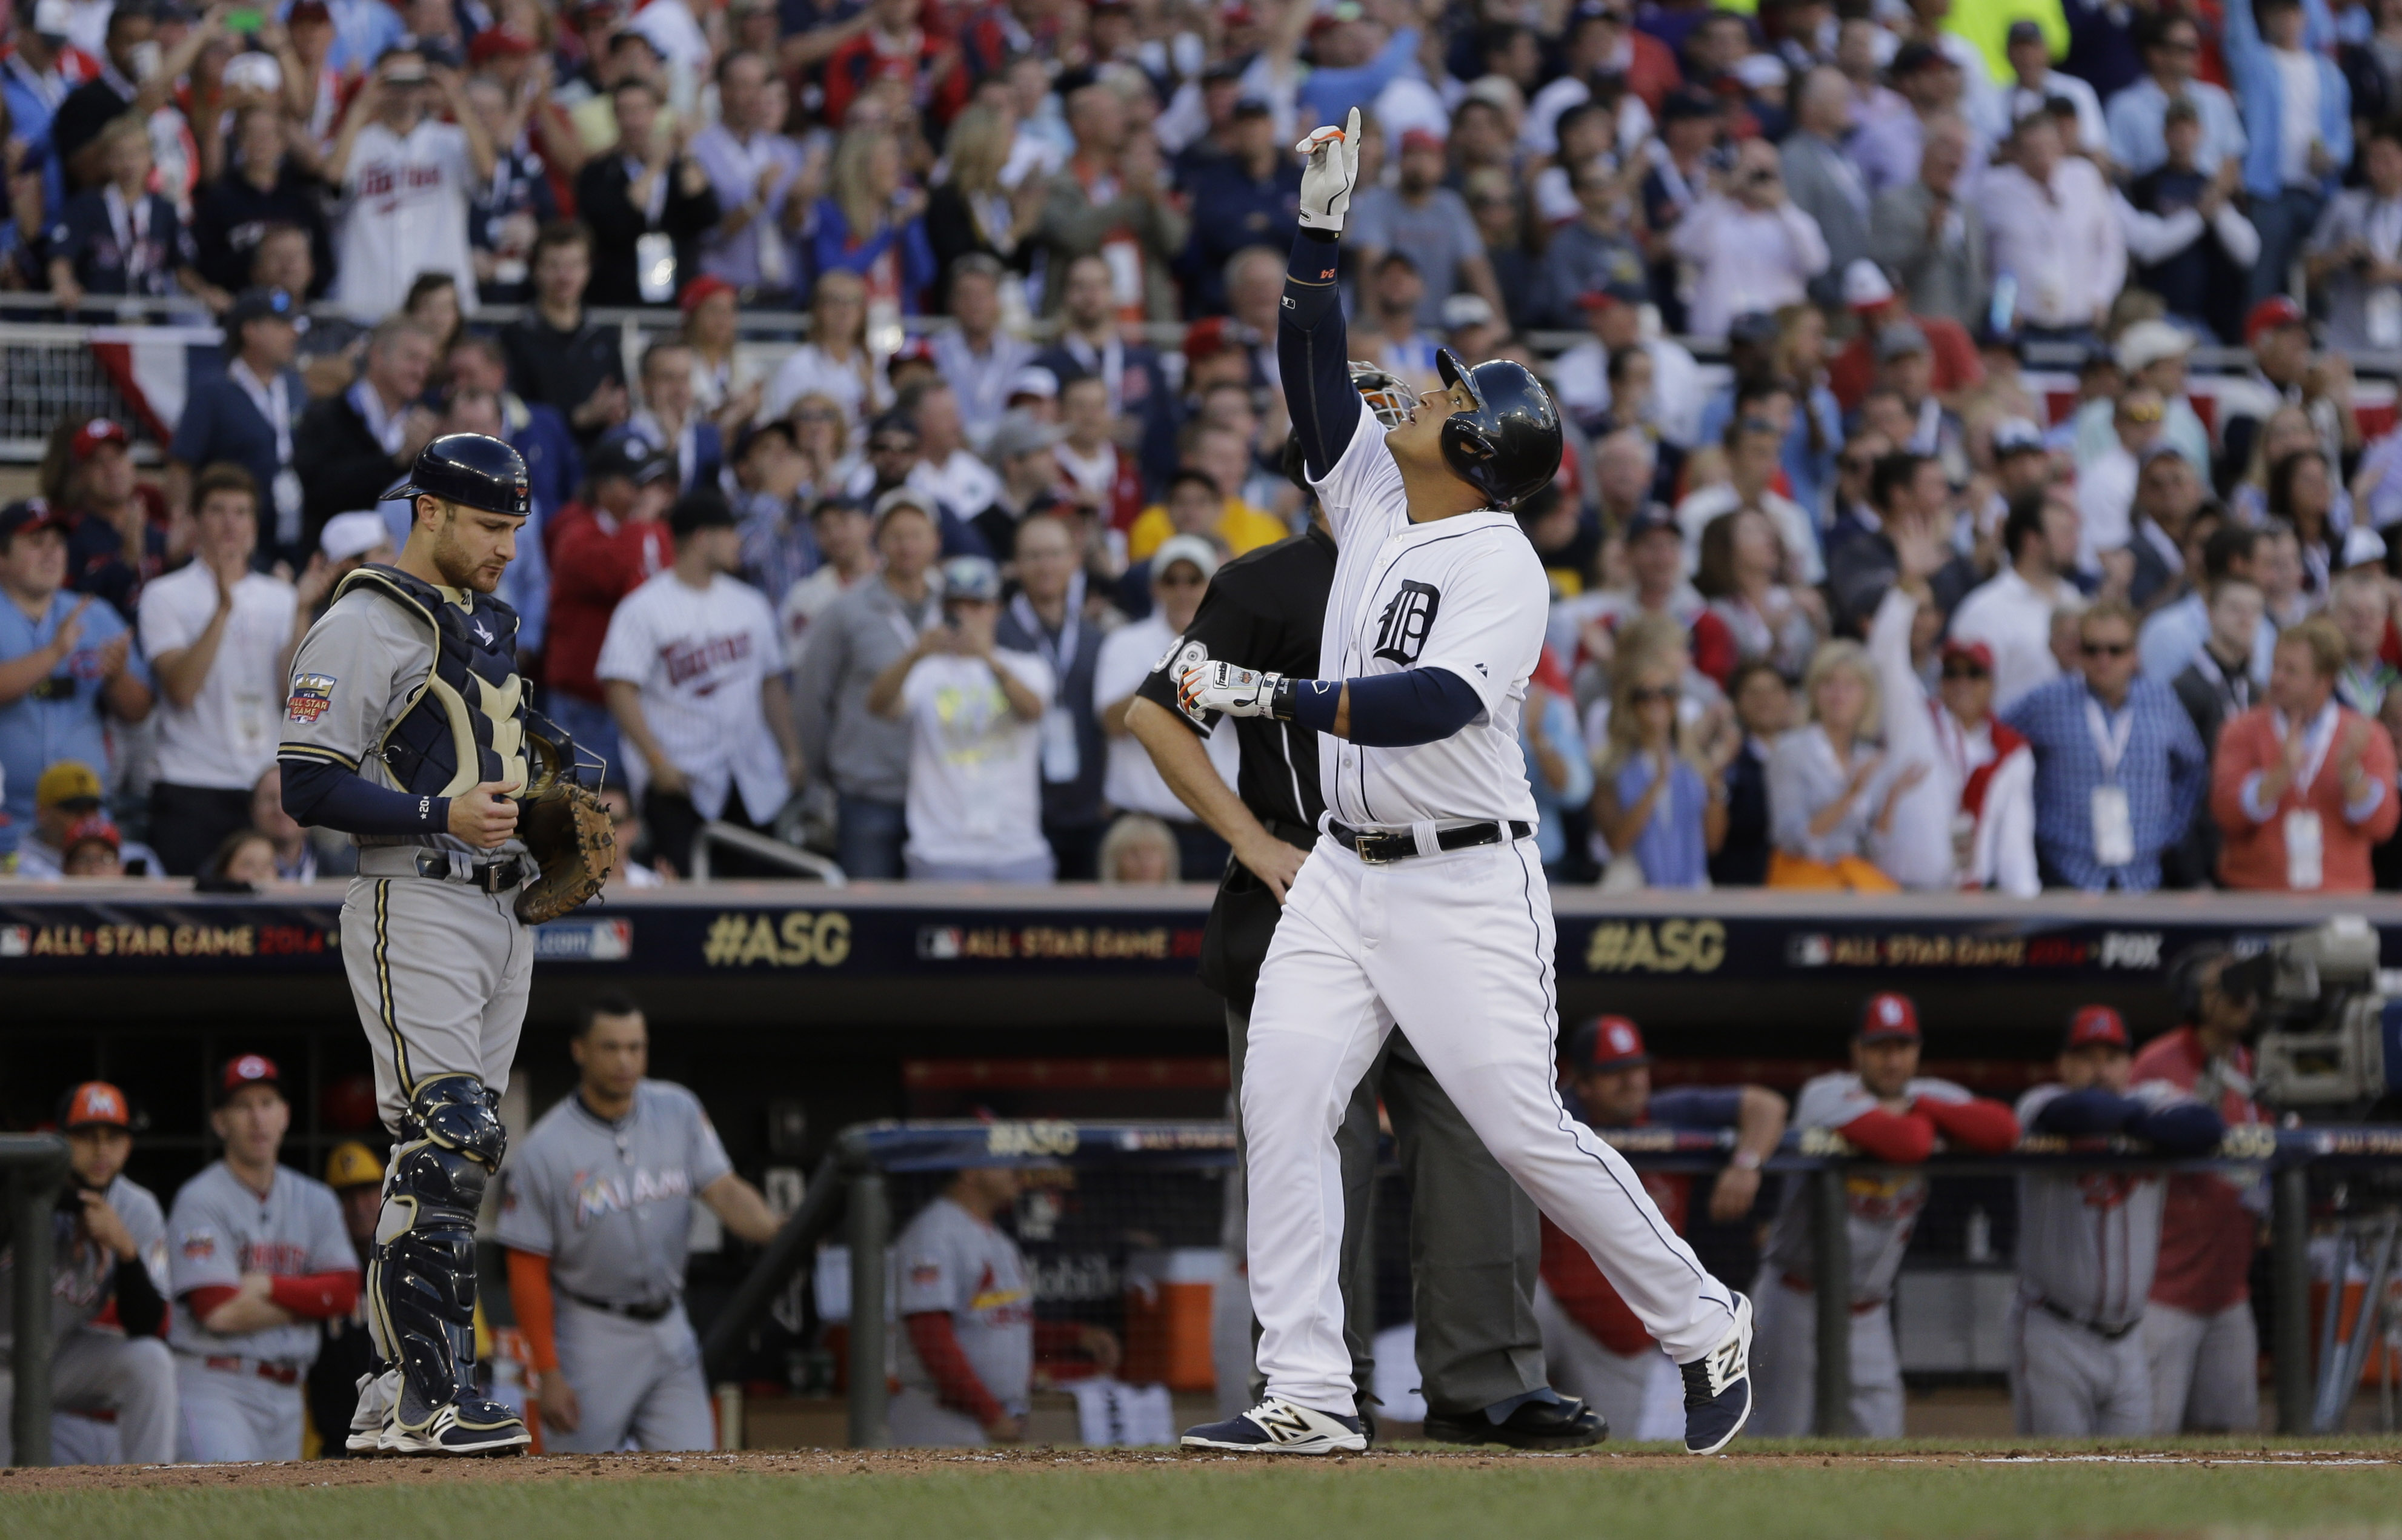 Jeter, Trout lead AL over NL 5-3 in All-Star game